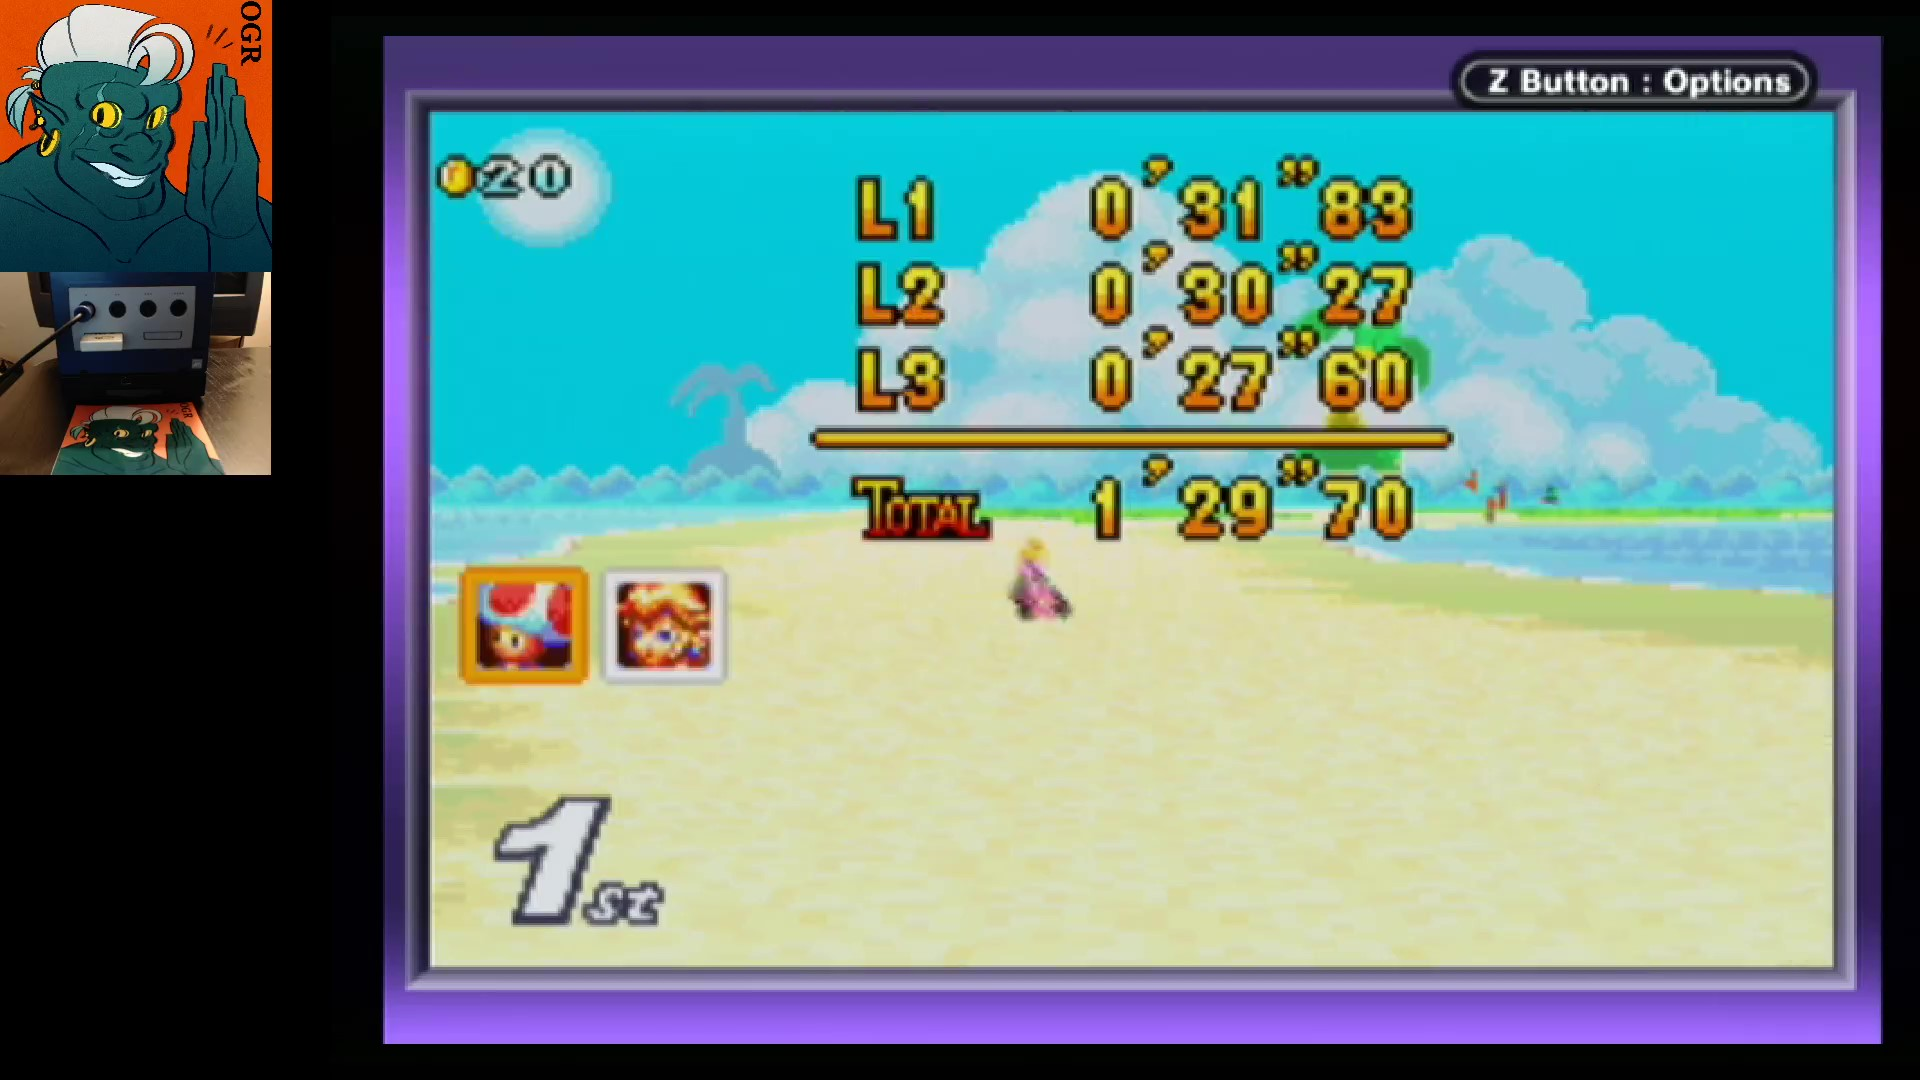 AwesomeOgre: Mario Kart Super Circuit: Shy Guy Beach [50cc] [Lap Time] (GBA) 0:00:27.6 points on 2020-05-27 04:18:11